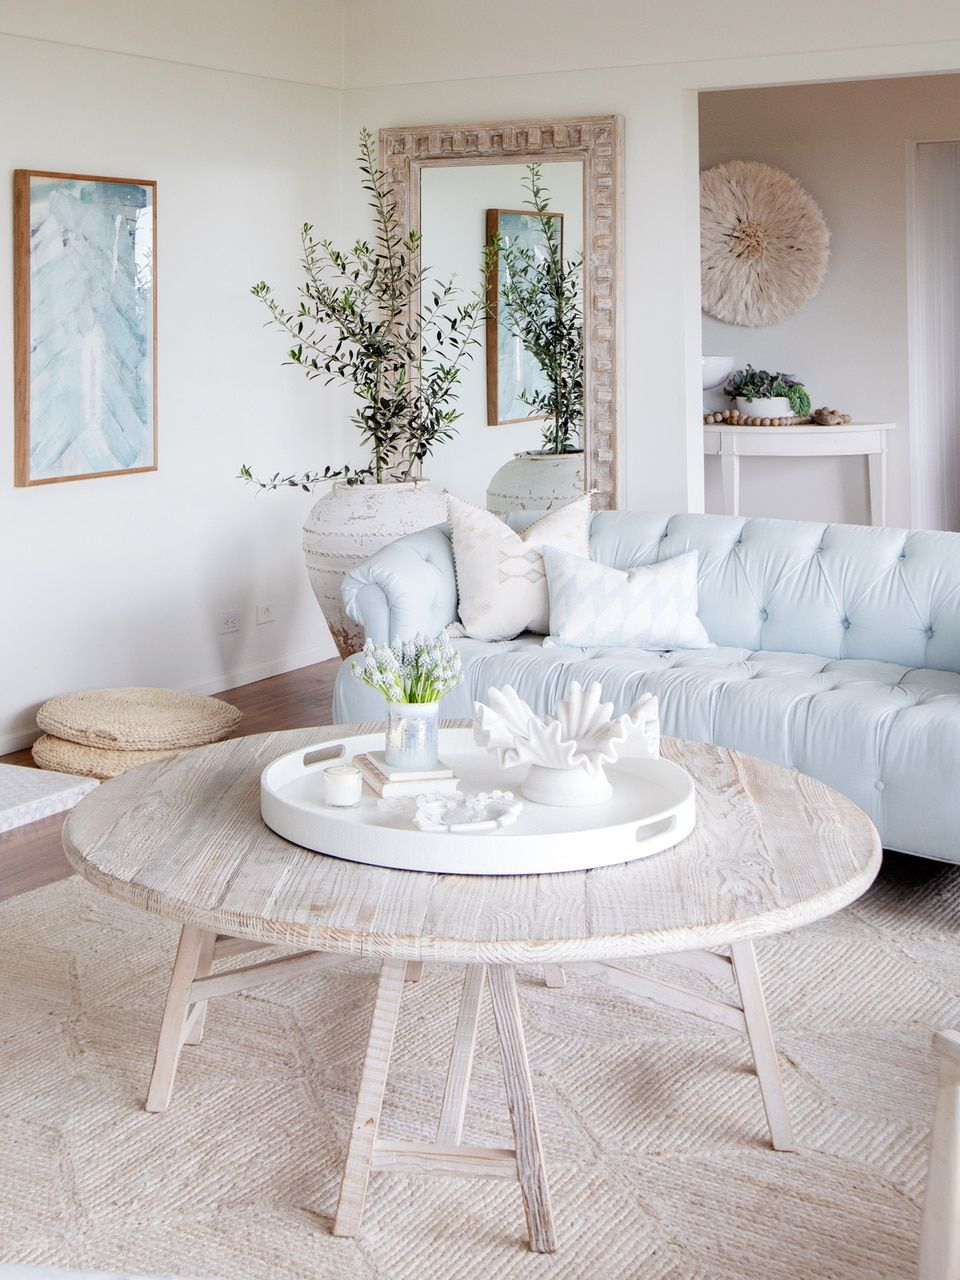 Relaxed Bohemian House Beach Look Style Bohemianliving Beachstyle Homedecor White Coffee Table Living Room Living Room Coffee Table Living Decor [ 1280 x 960 Pixel ]